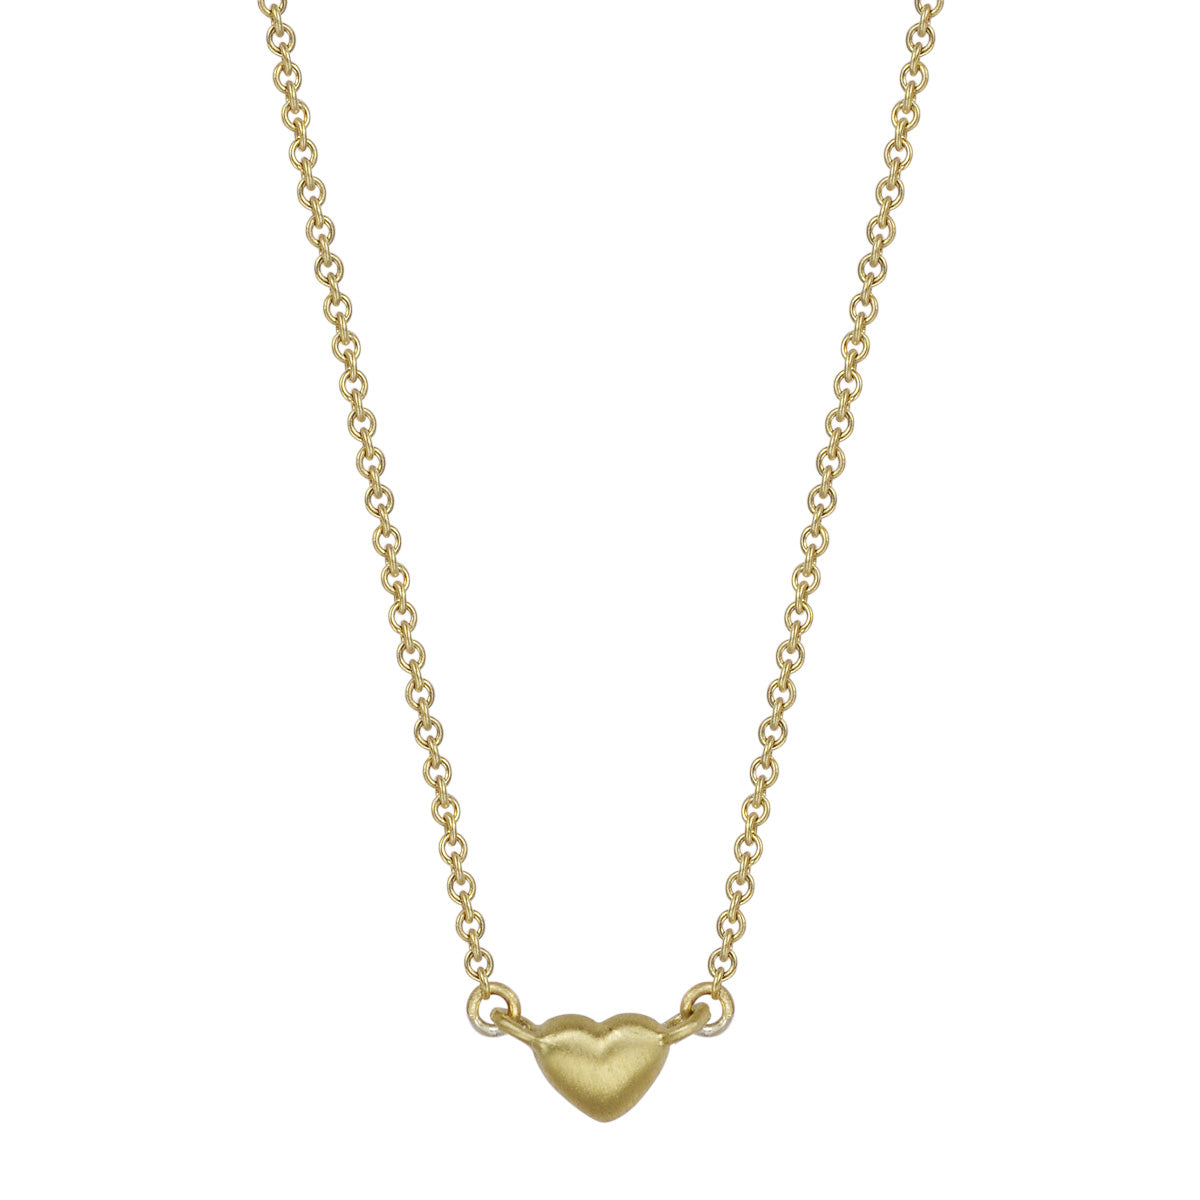 18K Gold Tiny Heart Pendant